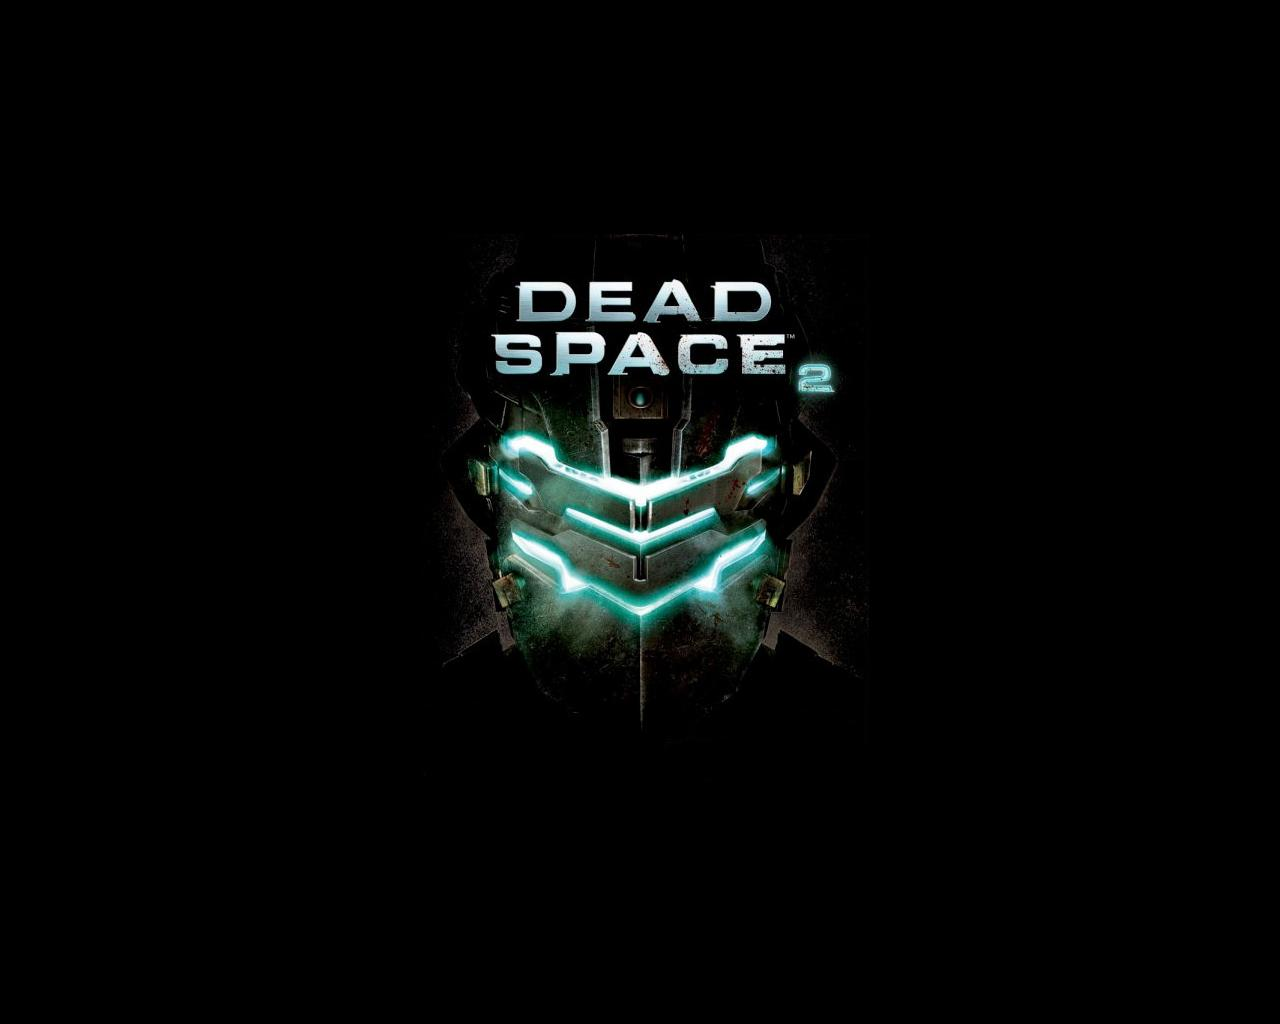 Home » Wallpapers » Dead Space II HD Wallpapers